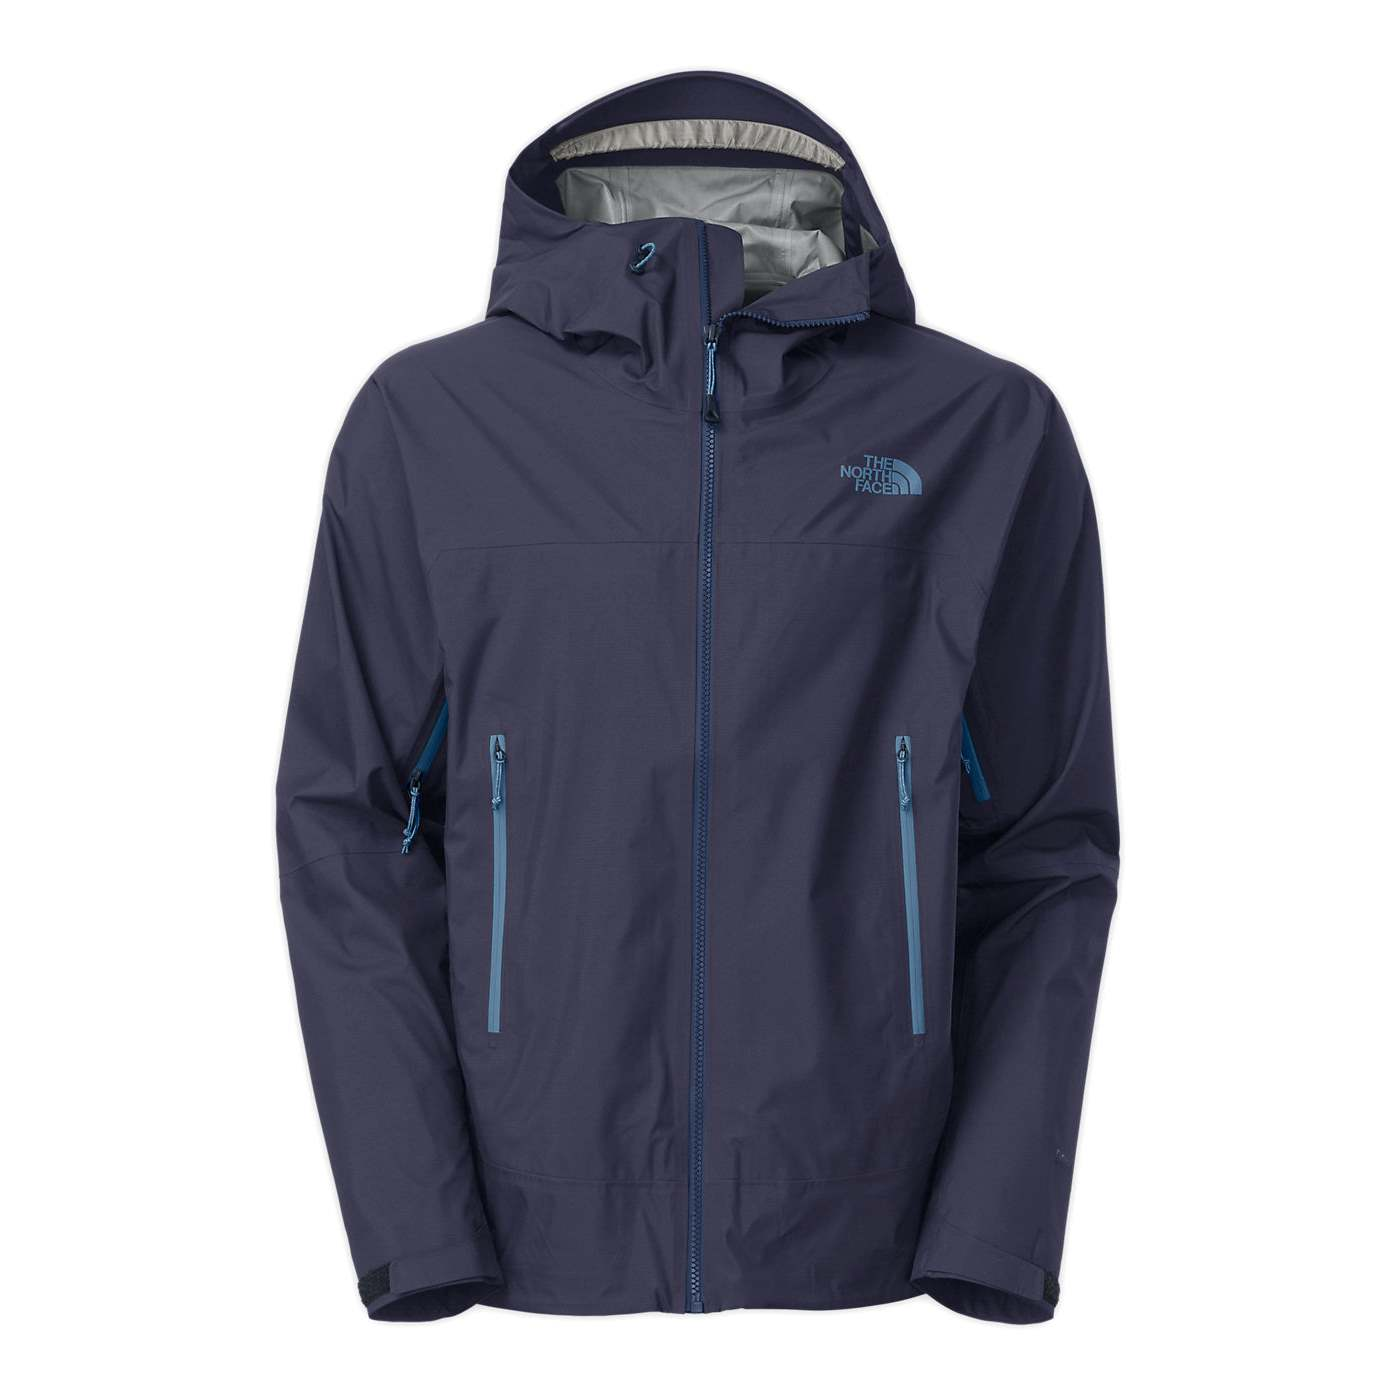 9642fe0fd923 Buy The North Face Men s Oroshi Jacket from Outnorth